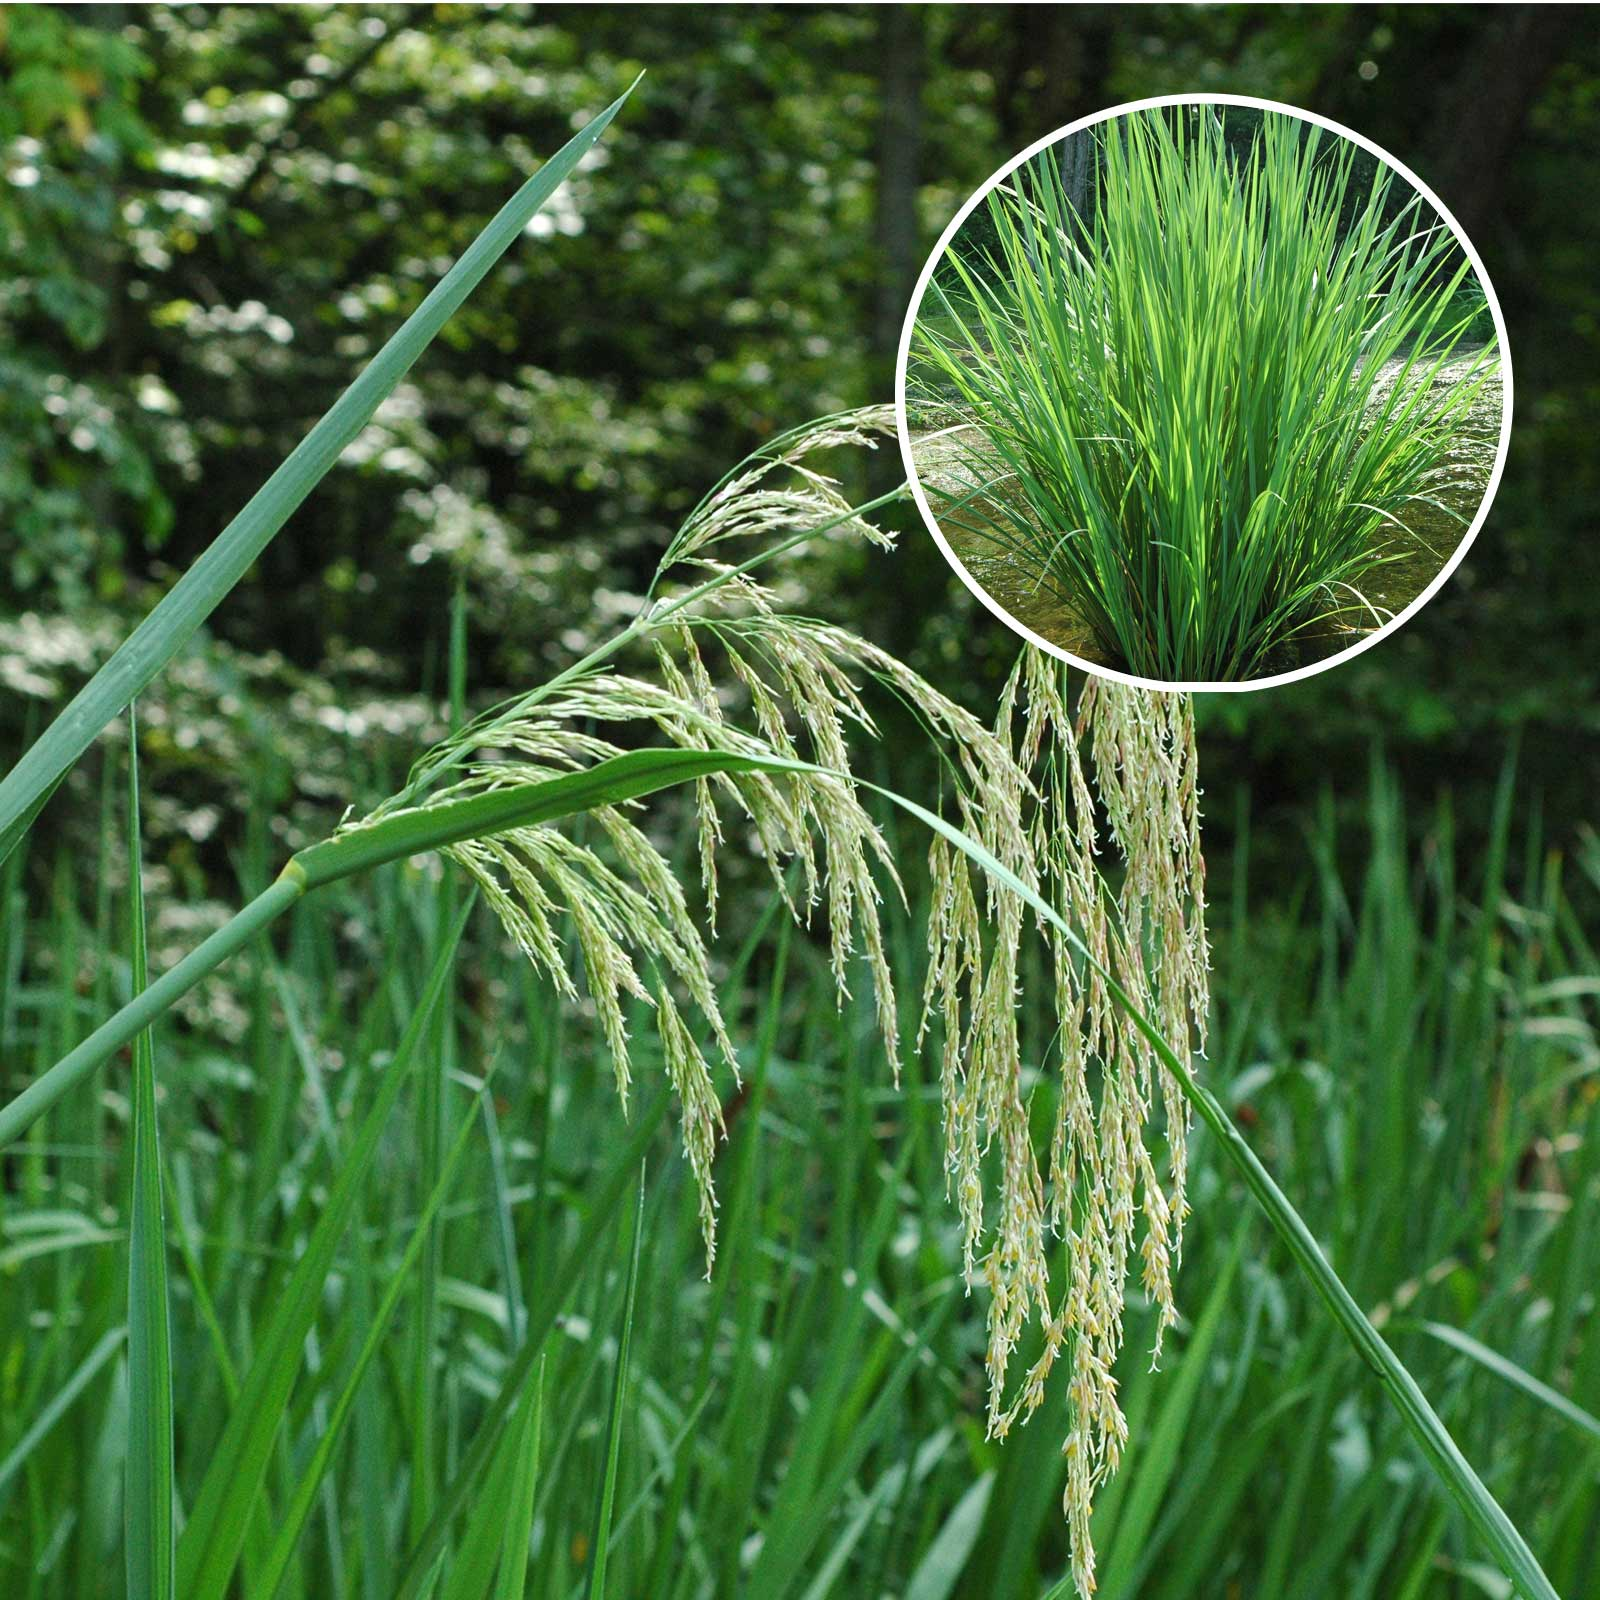 Giant Cutgrass weeds in North Carolina